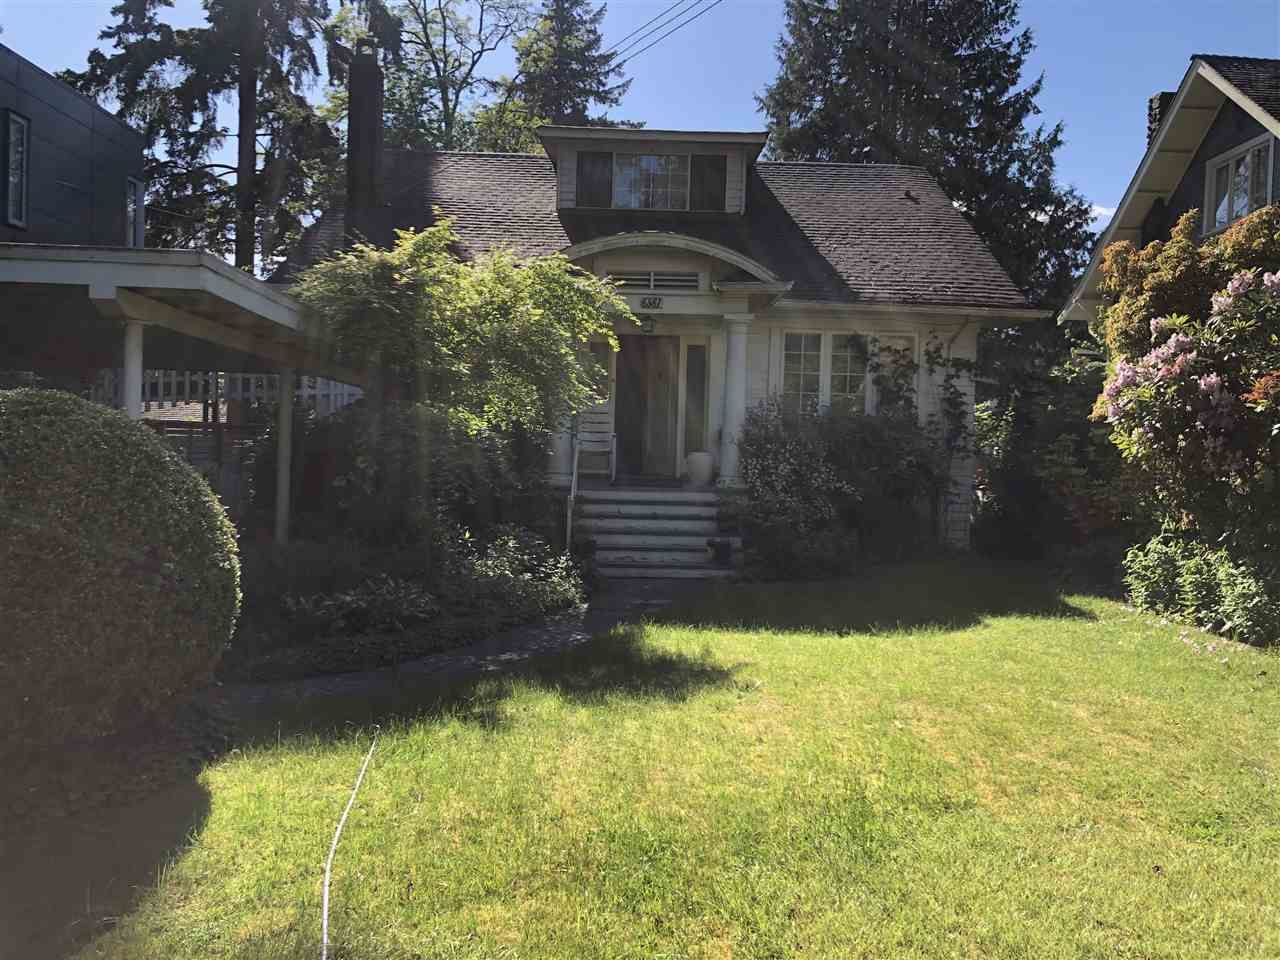 Main Photo: 6361 LARCH Street in Vancouver: Kerrisdale House for sale (Vancouver West)  : MLS®# R2465204